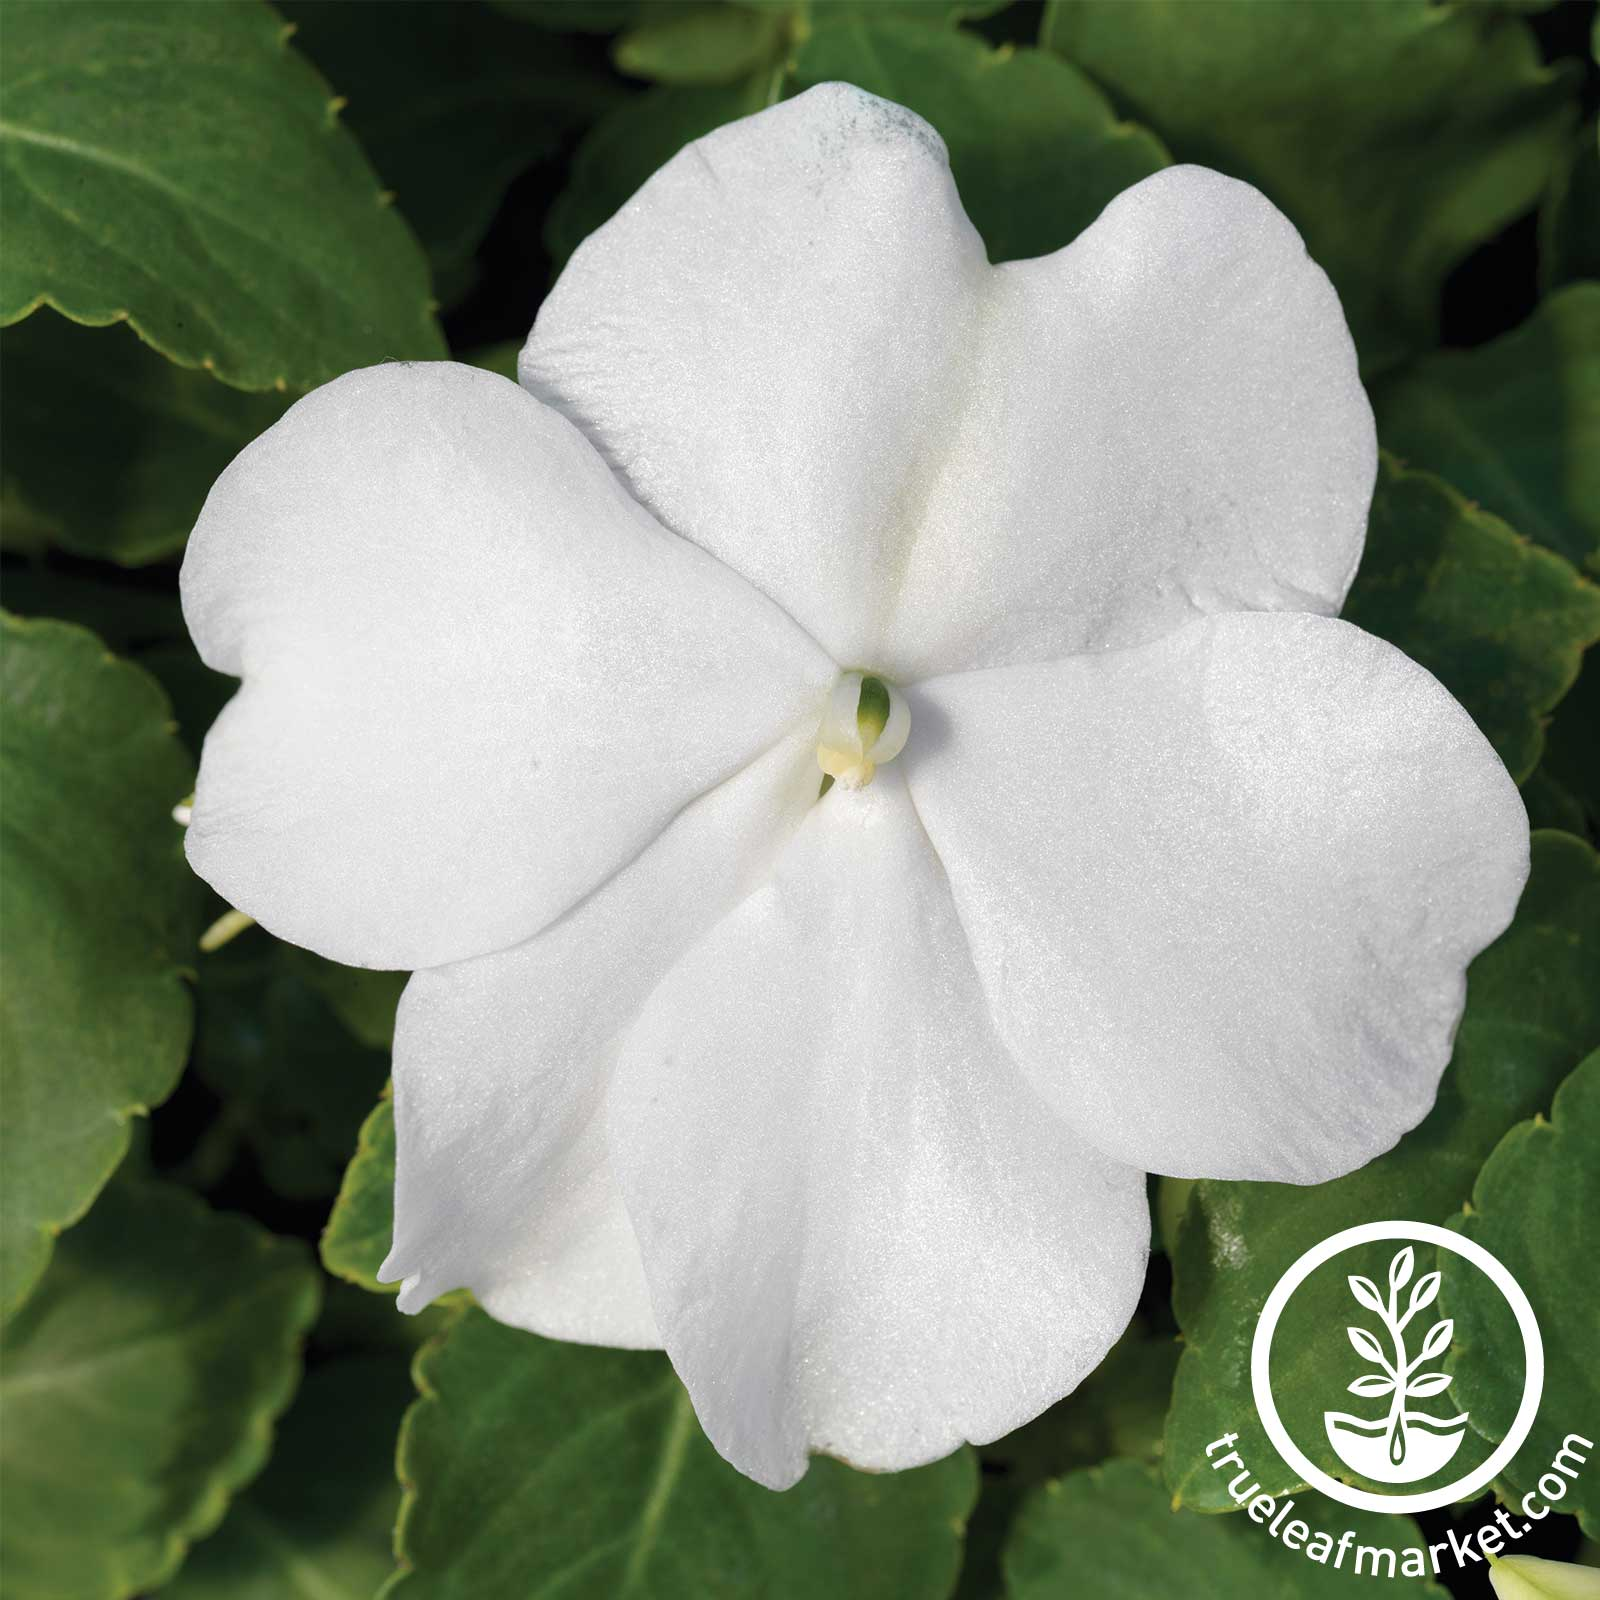 Impatiens Accent Series White Flower Seed